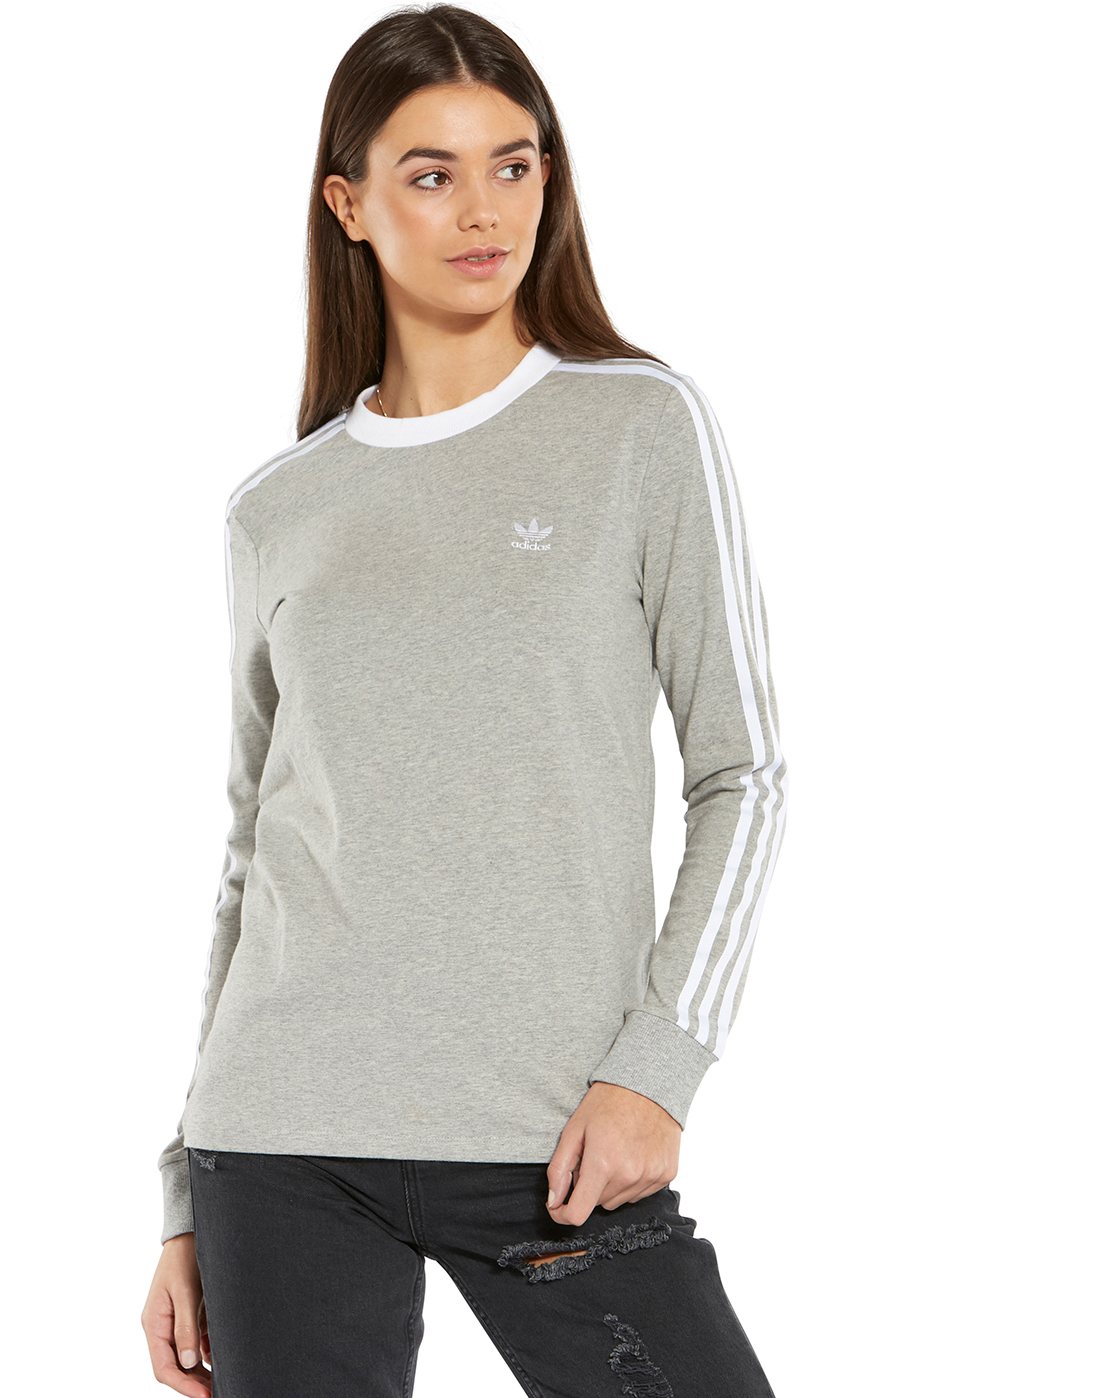 e780a655c606 Women's Grey adidas Originals Long Sleeve Top | Life Style Sports